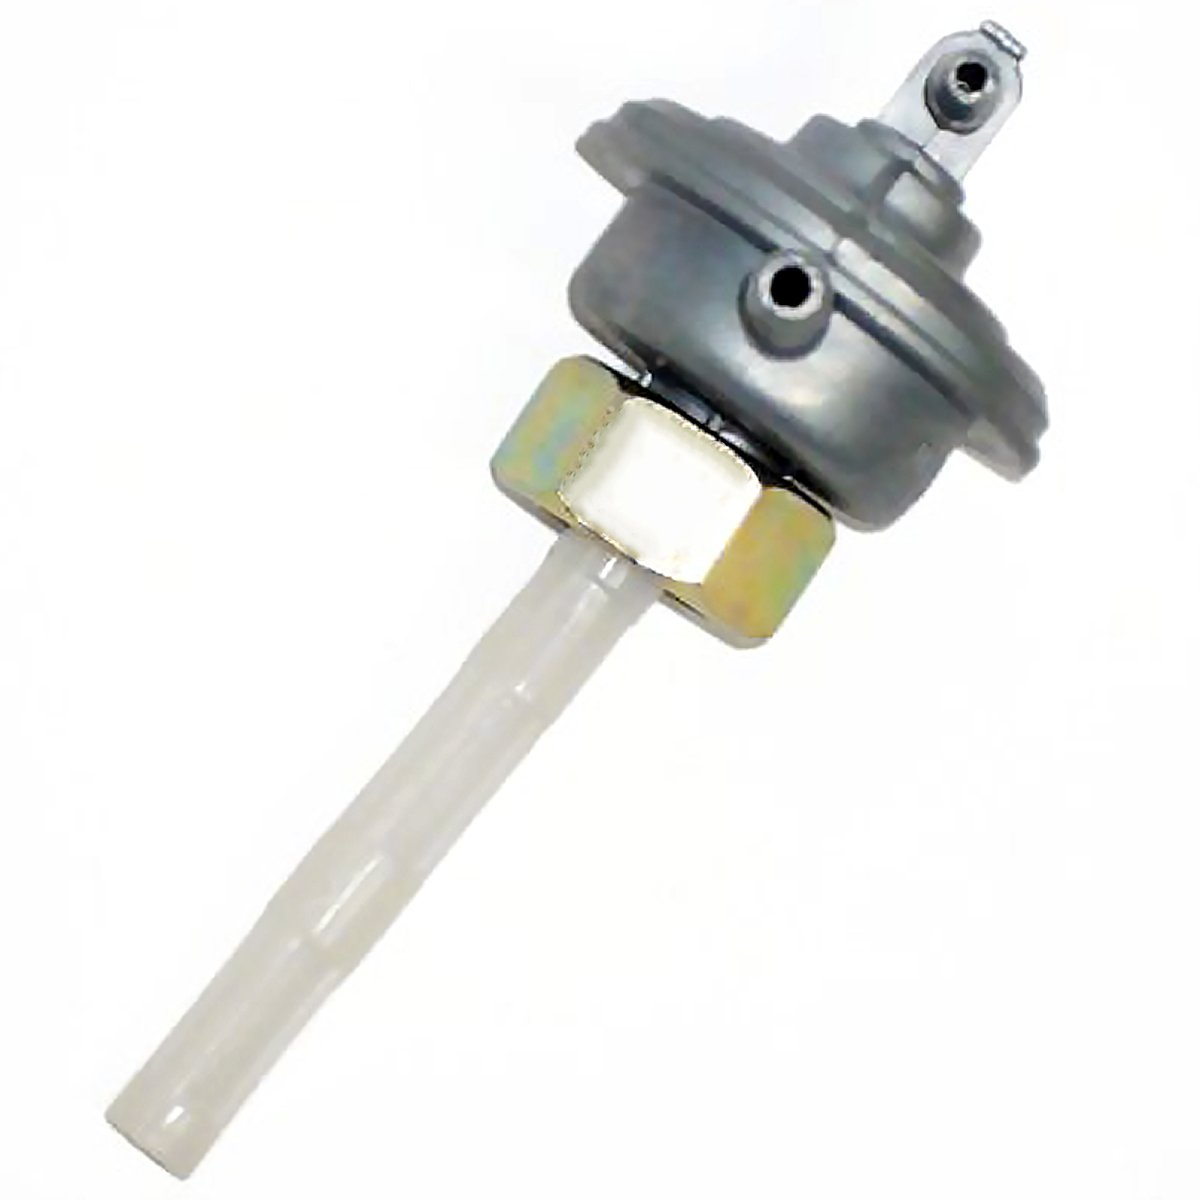 Cheap 150cc Scooter Fuel Pump Find Deals On Filter Get Quotations Valve Petcock With Moped Motorcycle 50cc 125cc Gy6 0801 By